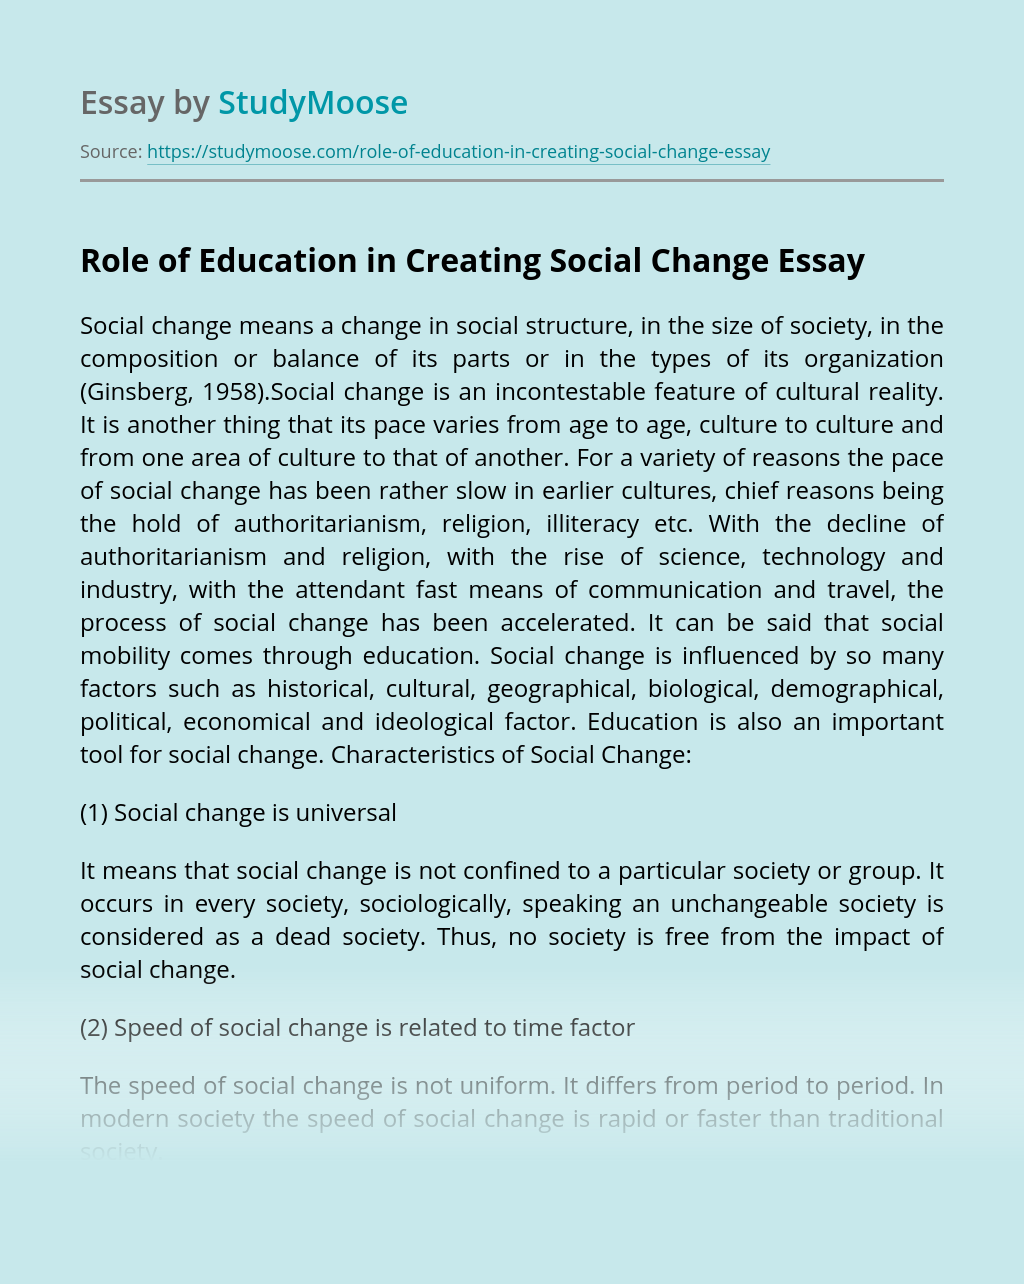 Role of Education in Creating Social Change